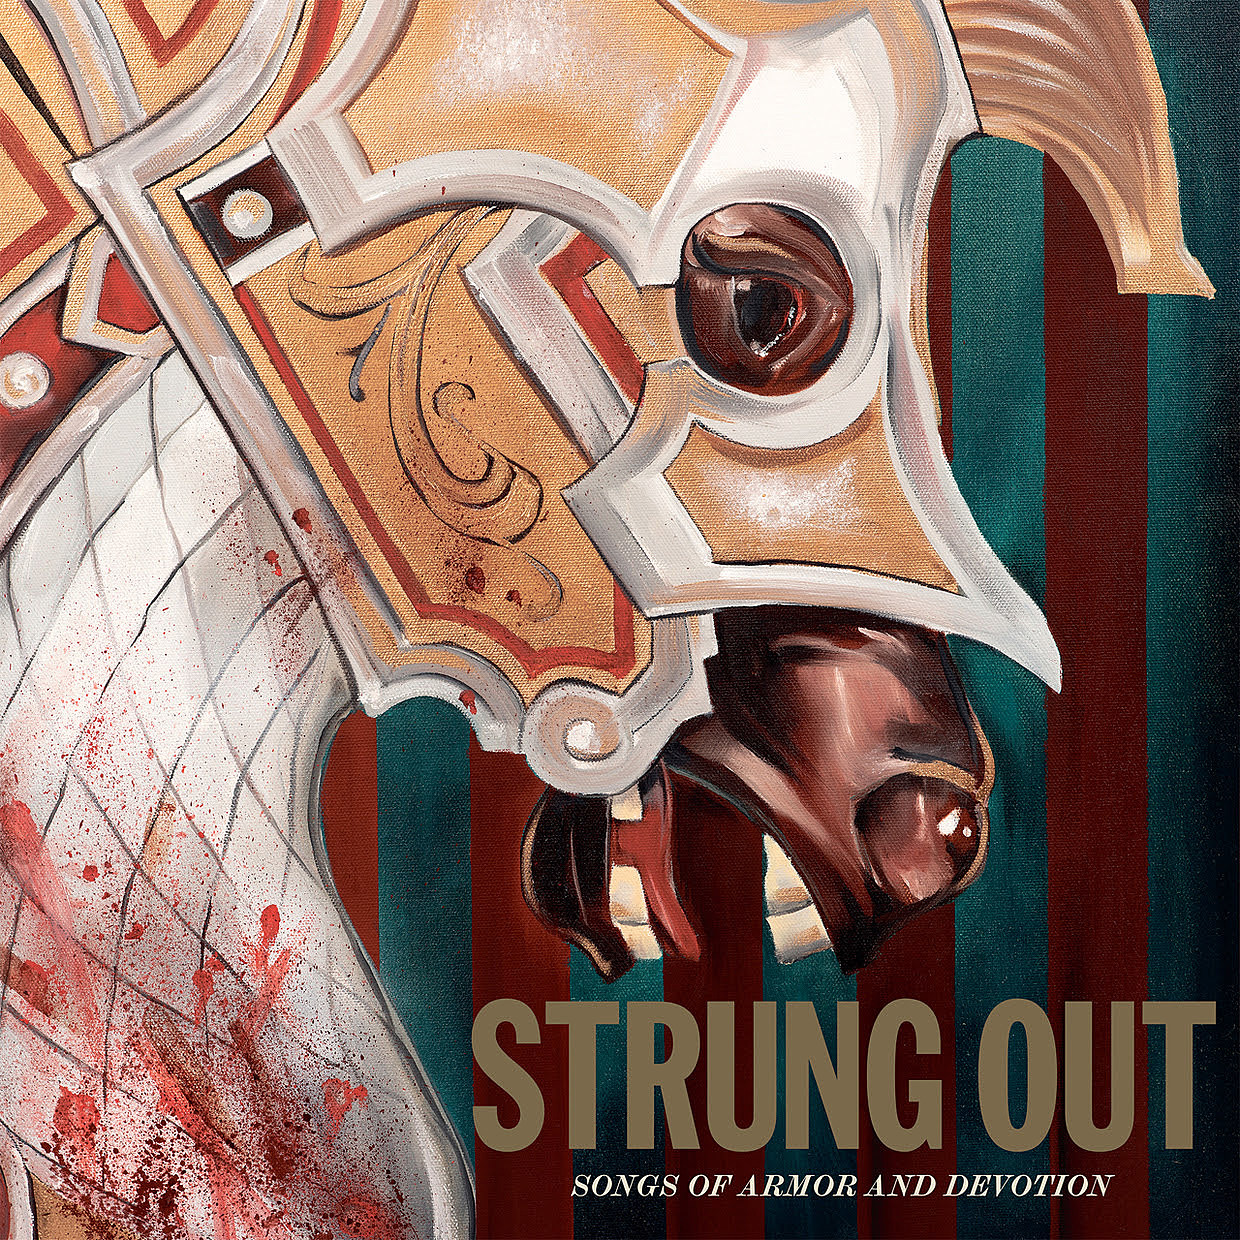 El topic del HARDCORE MELÓDICO - Página 8 Strung-out-armor-devotion